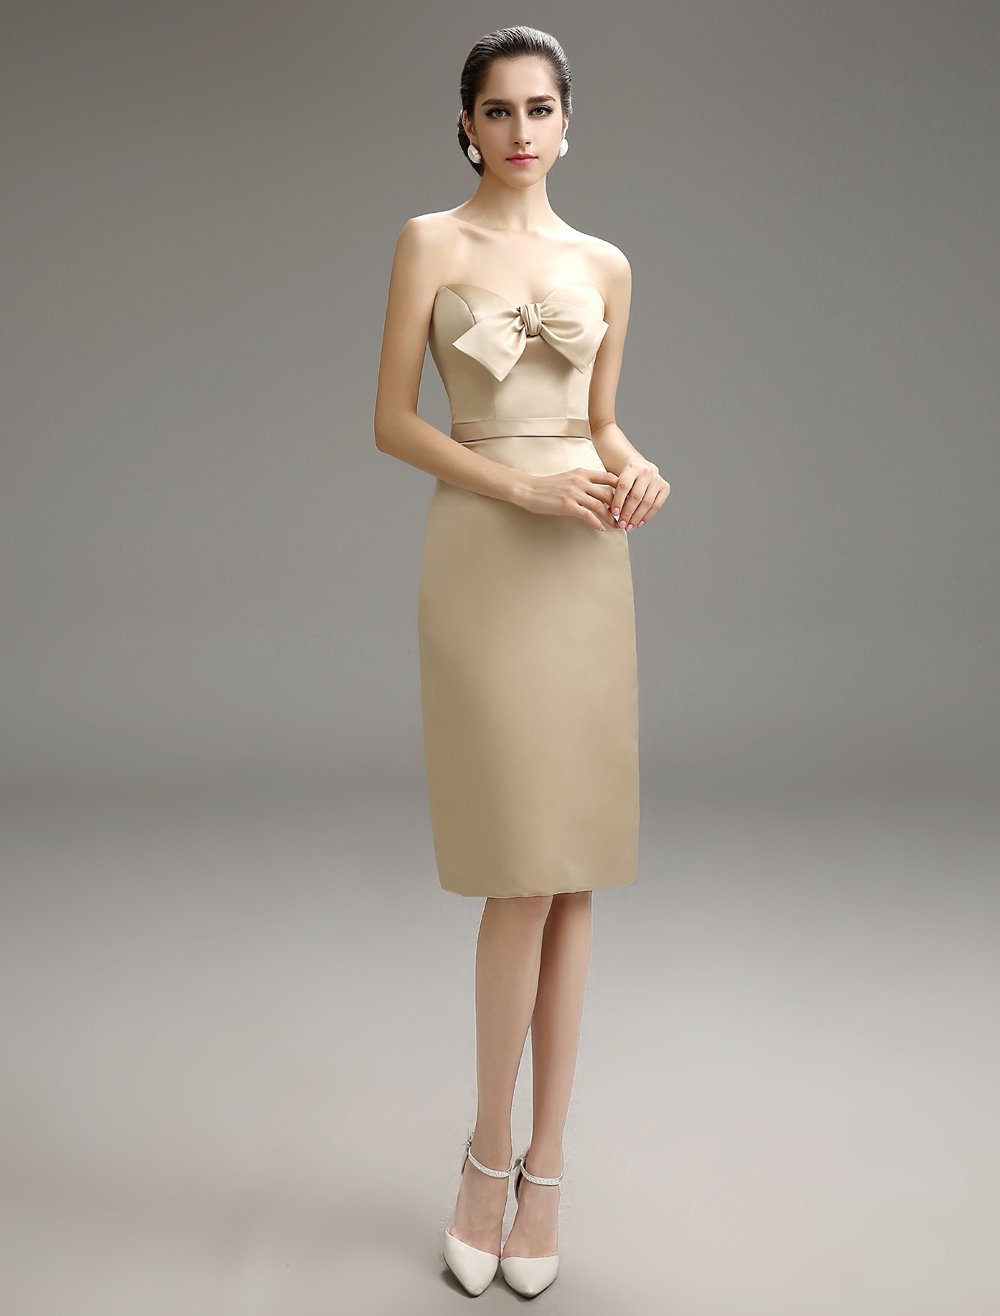 Gold Champagne Vintage Sweetheart Knee-Length Bridesmaid Dress With Bow Decor Milanoo